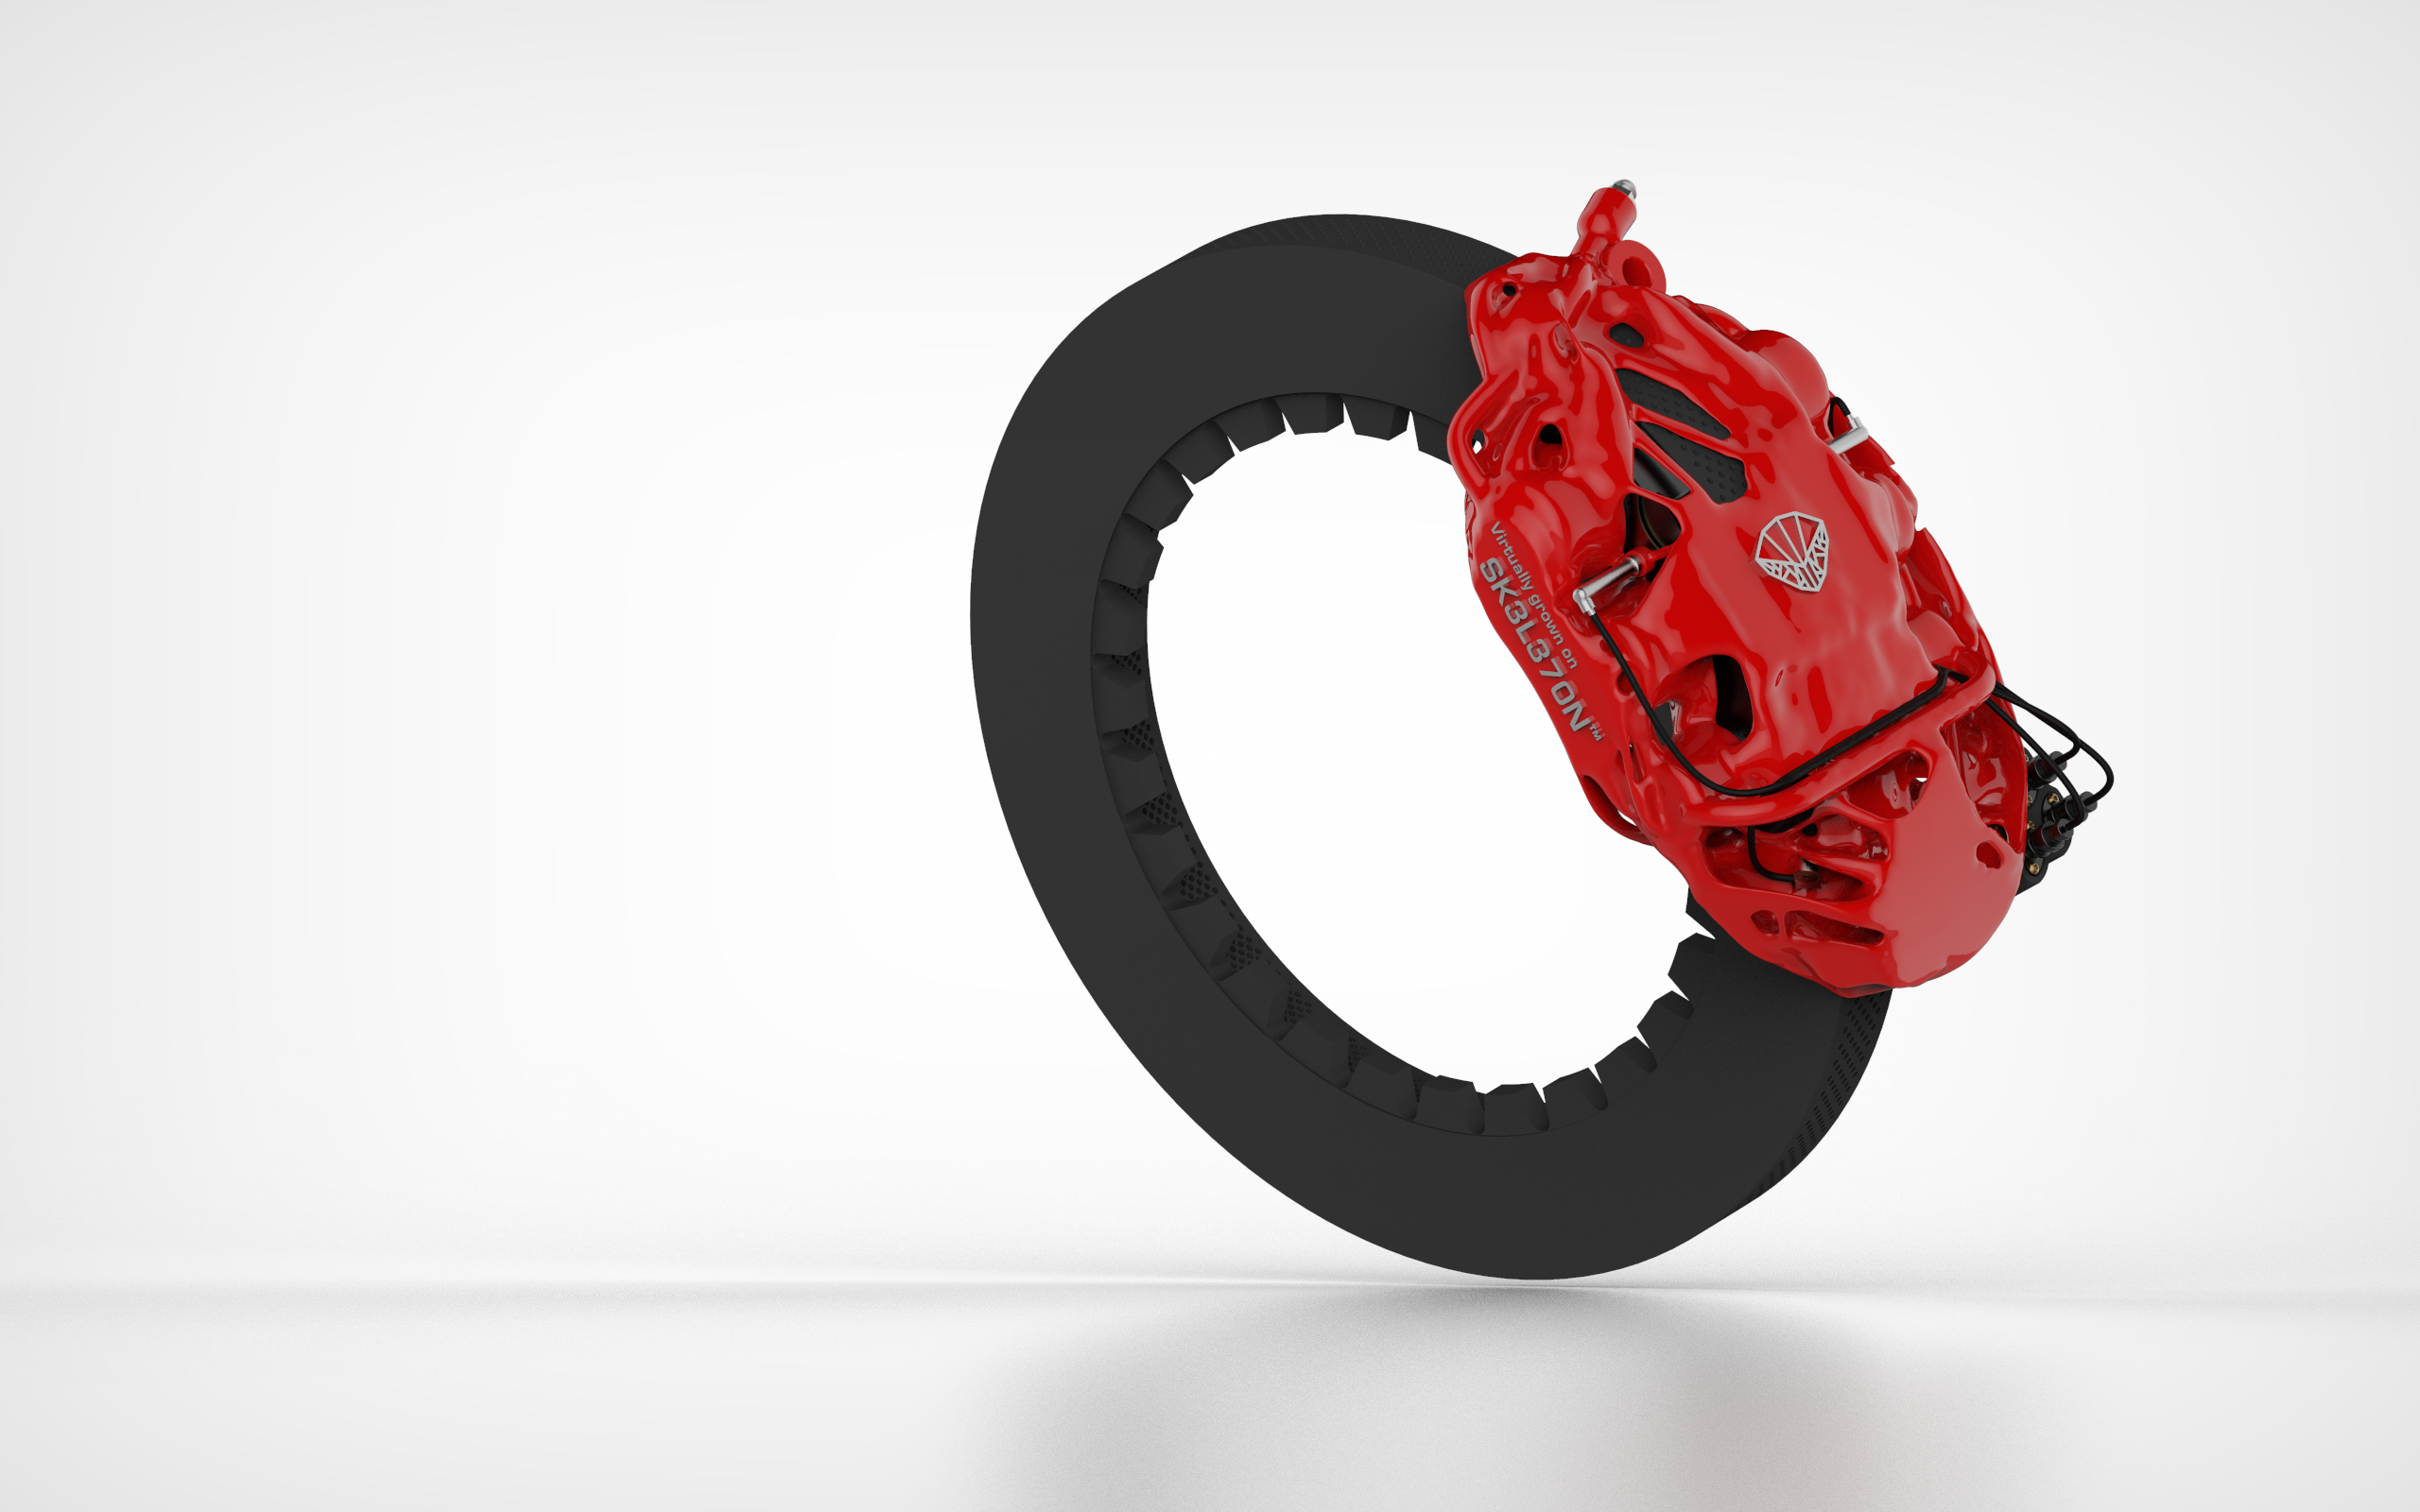 A 3D printed brake caliper created on the SK3L370N platform. Image via Carbon Performance.